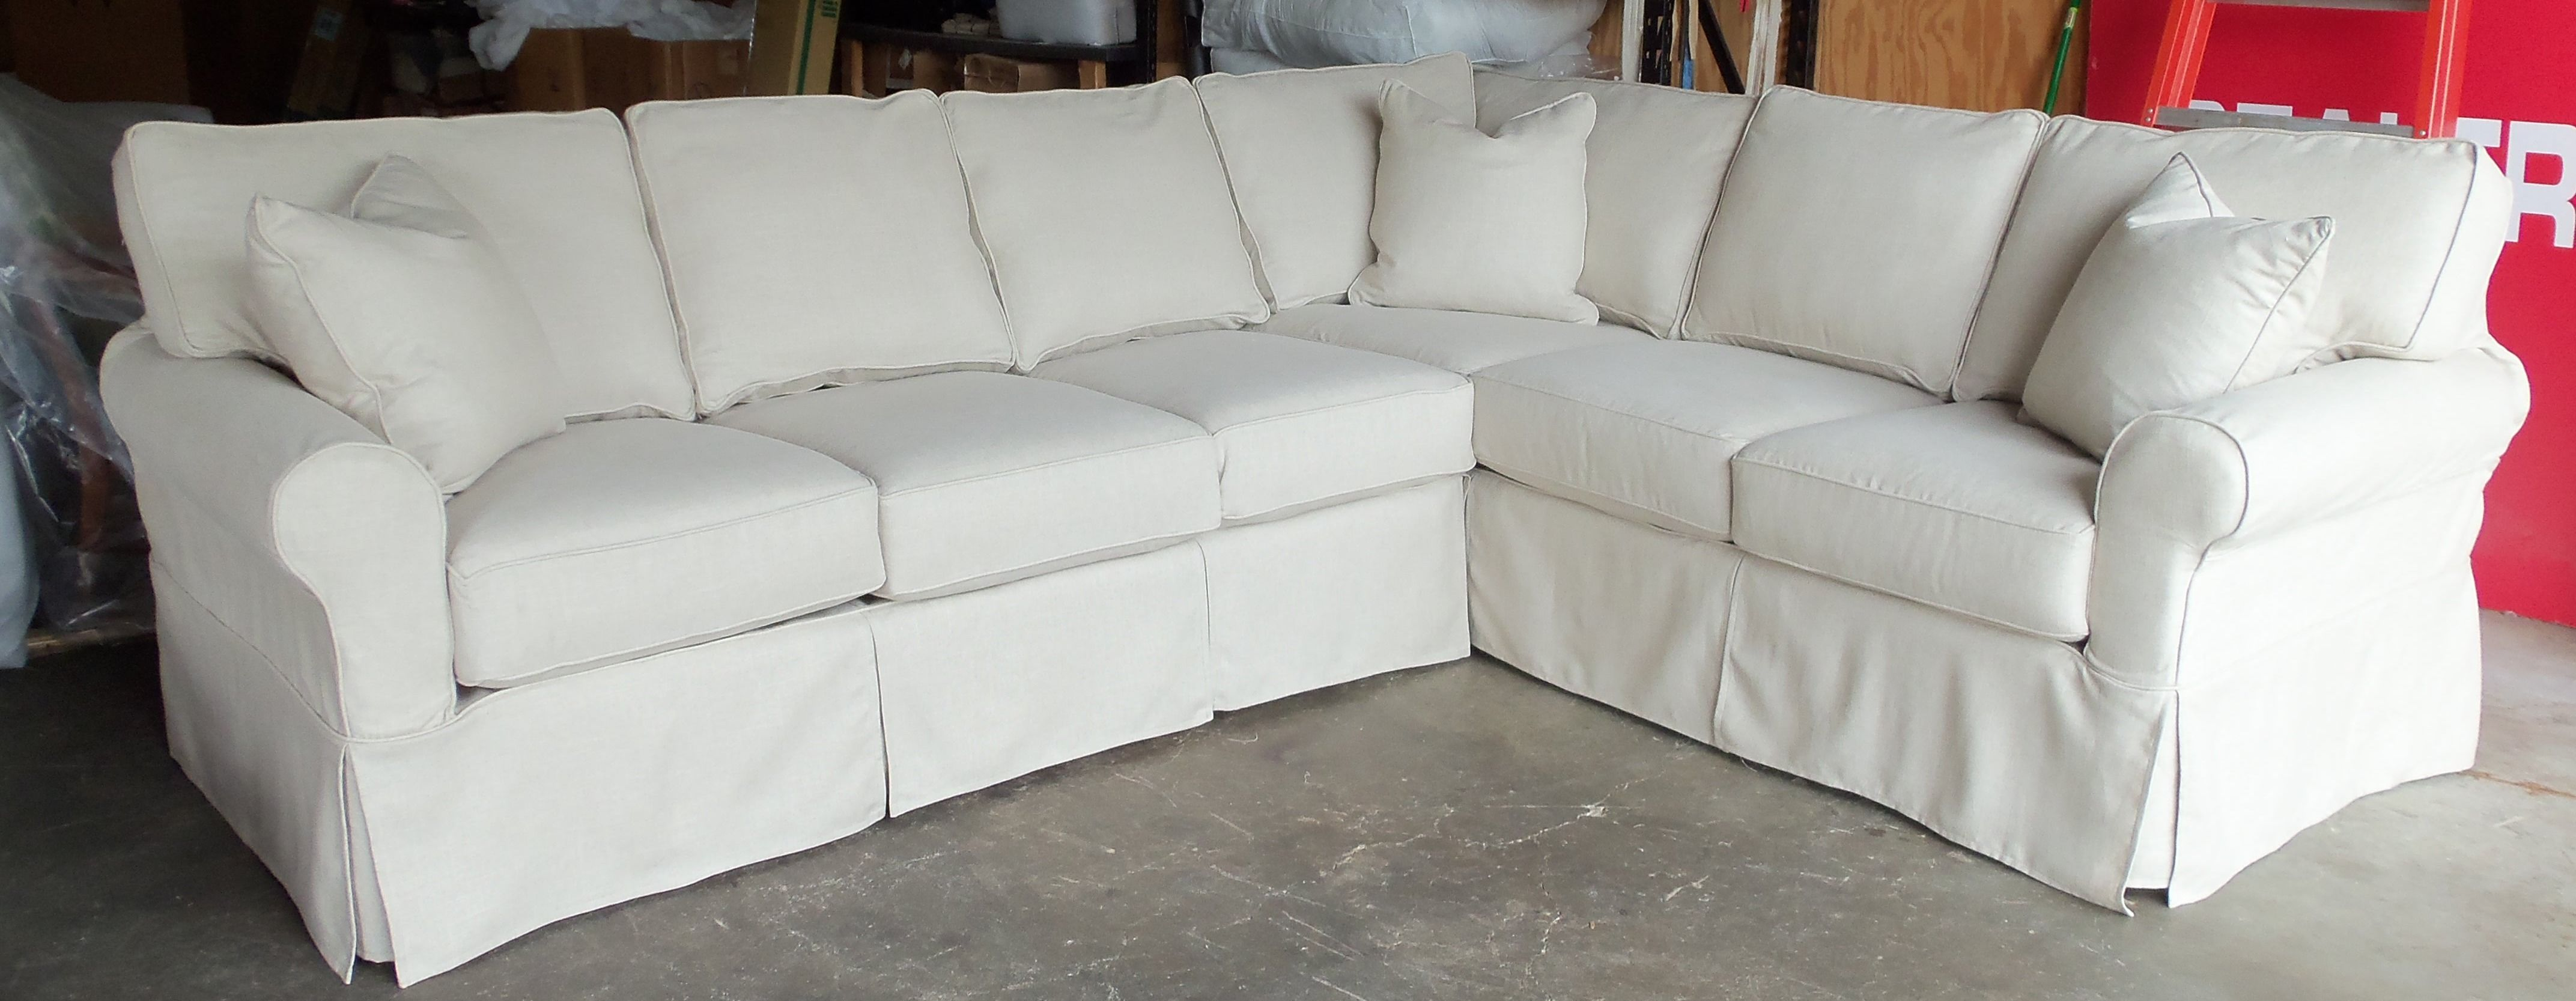 wonderful slip cover sofa ideas-Latest Slip Cover sofa Collection